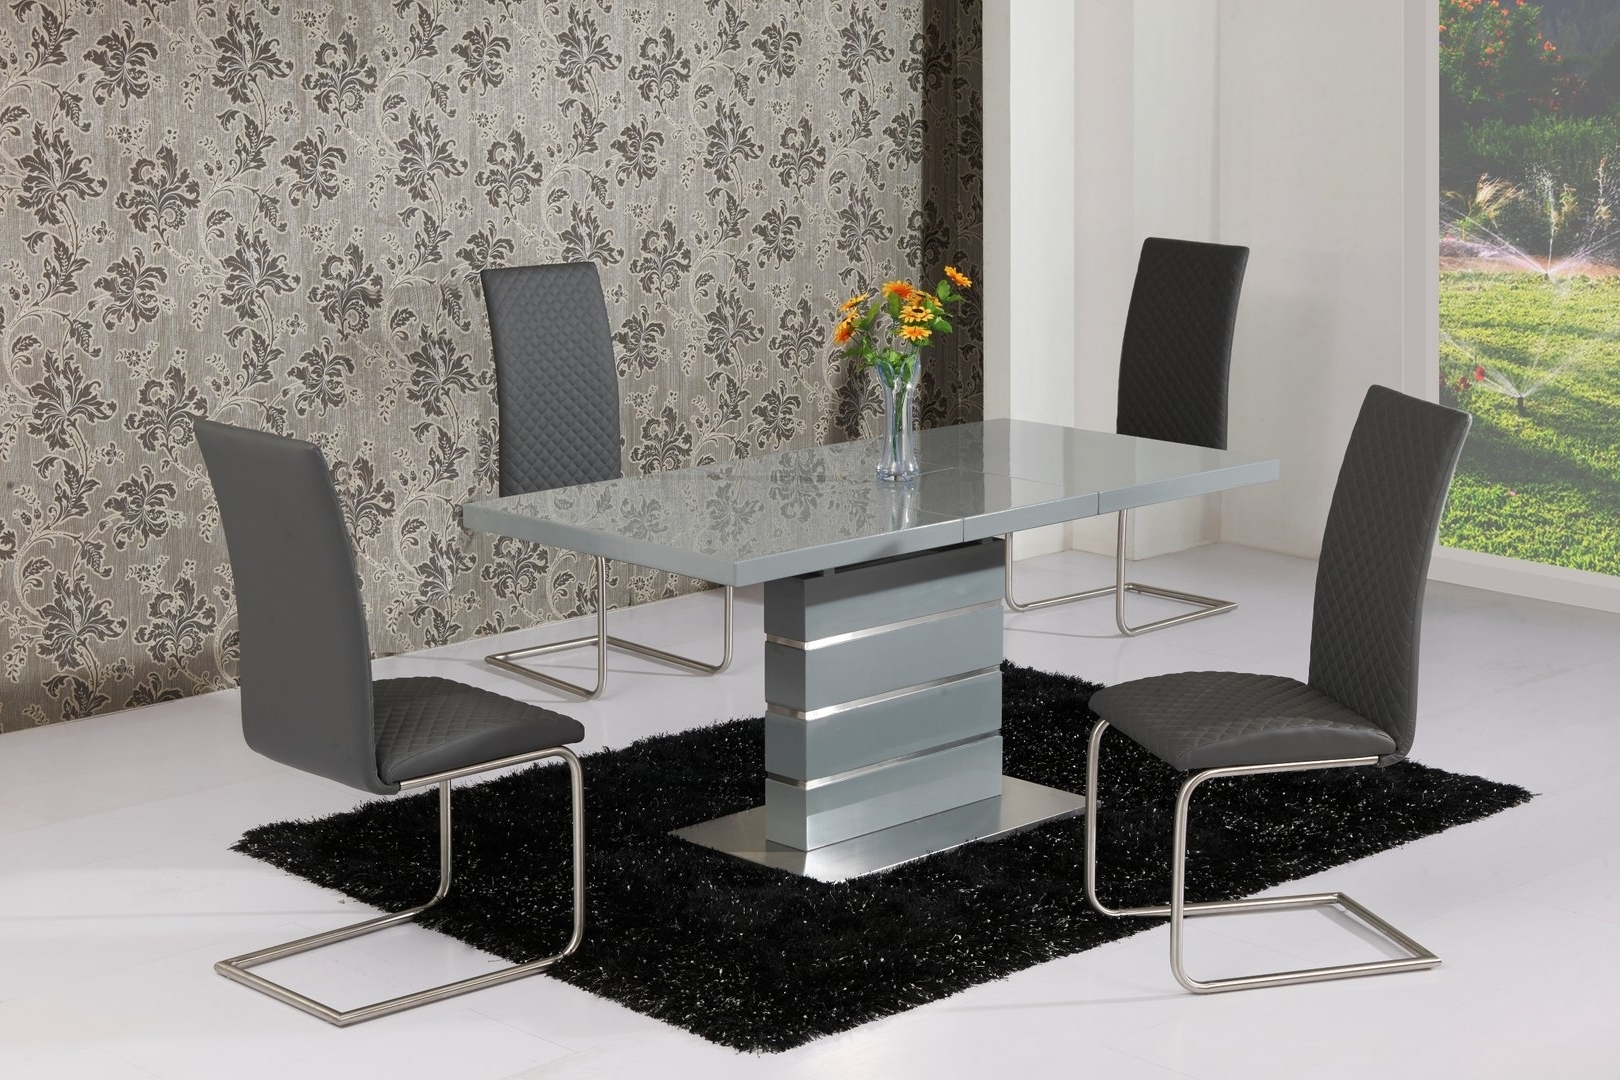 Extending Gloss Dining Tables Regarding Most Popular Extending Grey High Gloss Dining Table And 4 Grey Chairs (View 3 of 25)